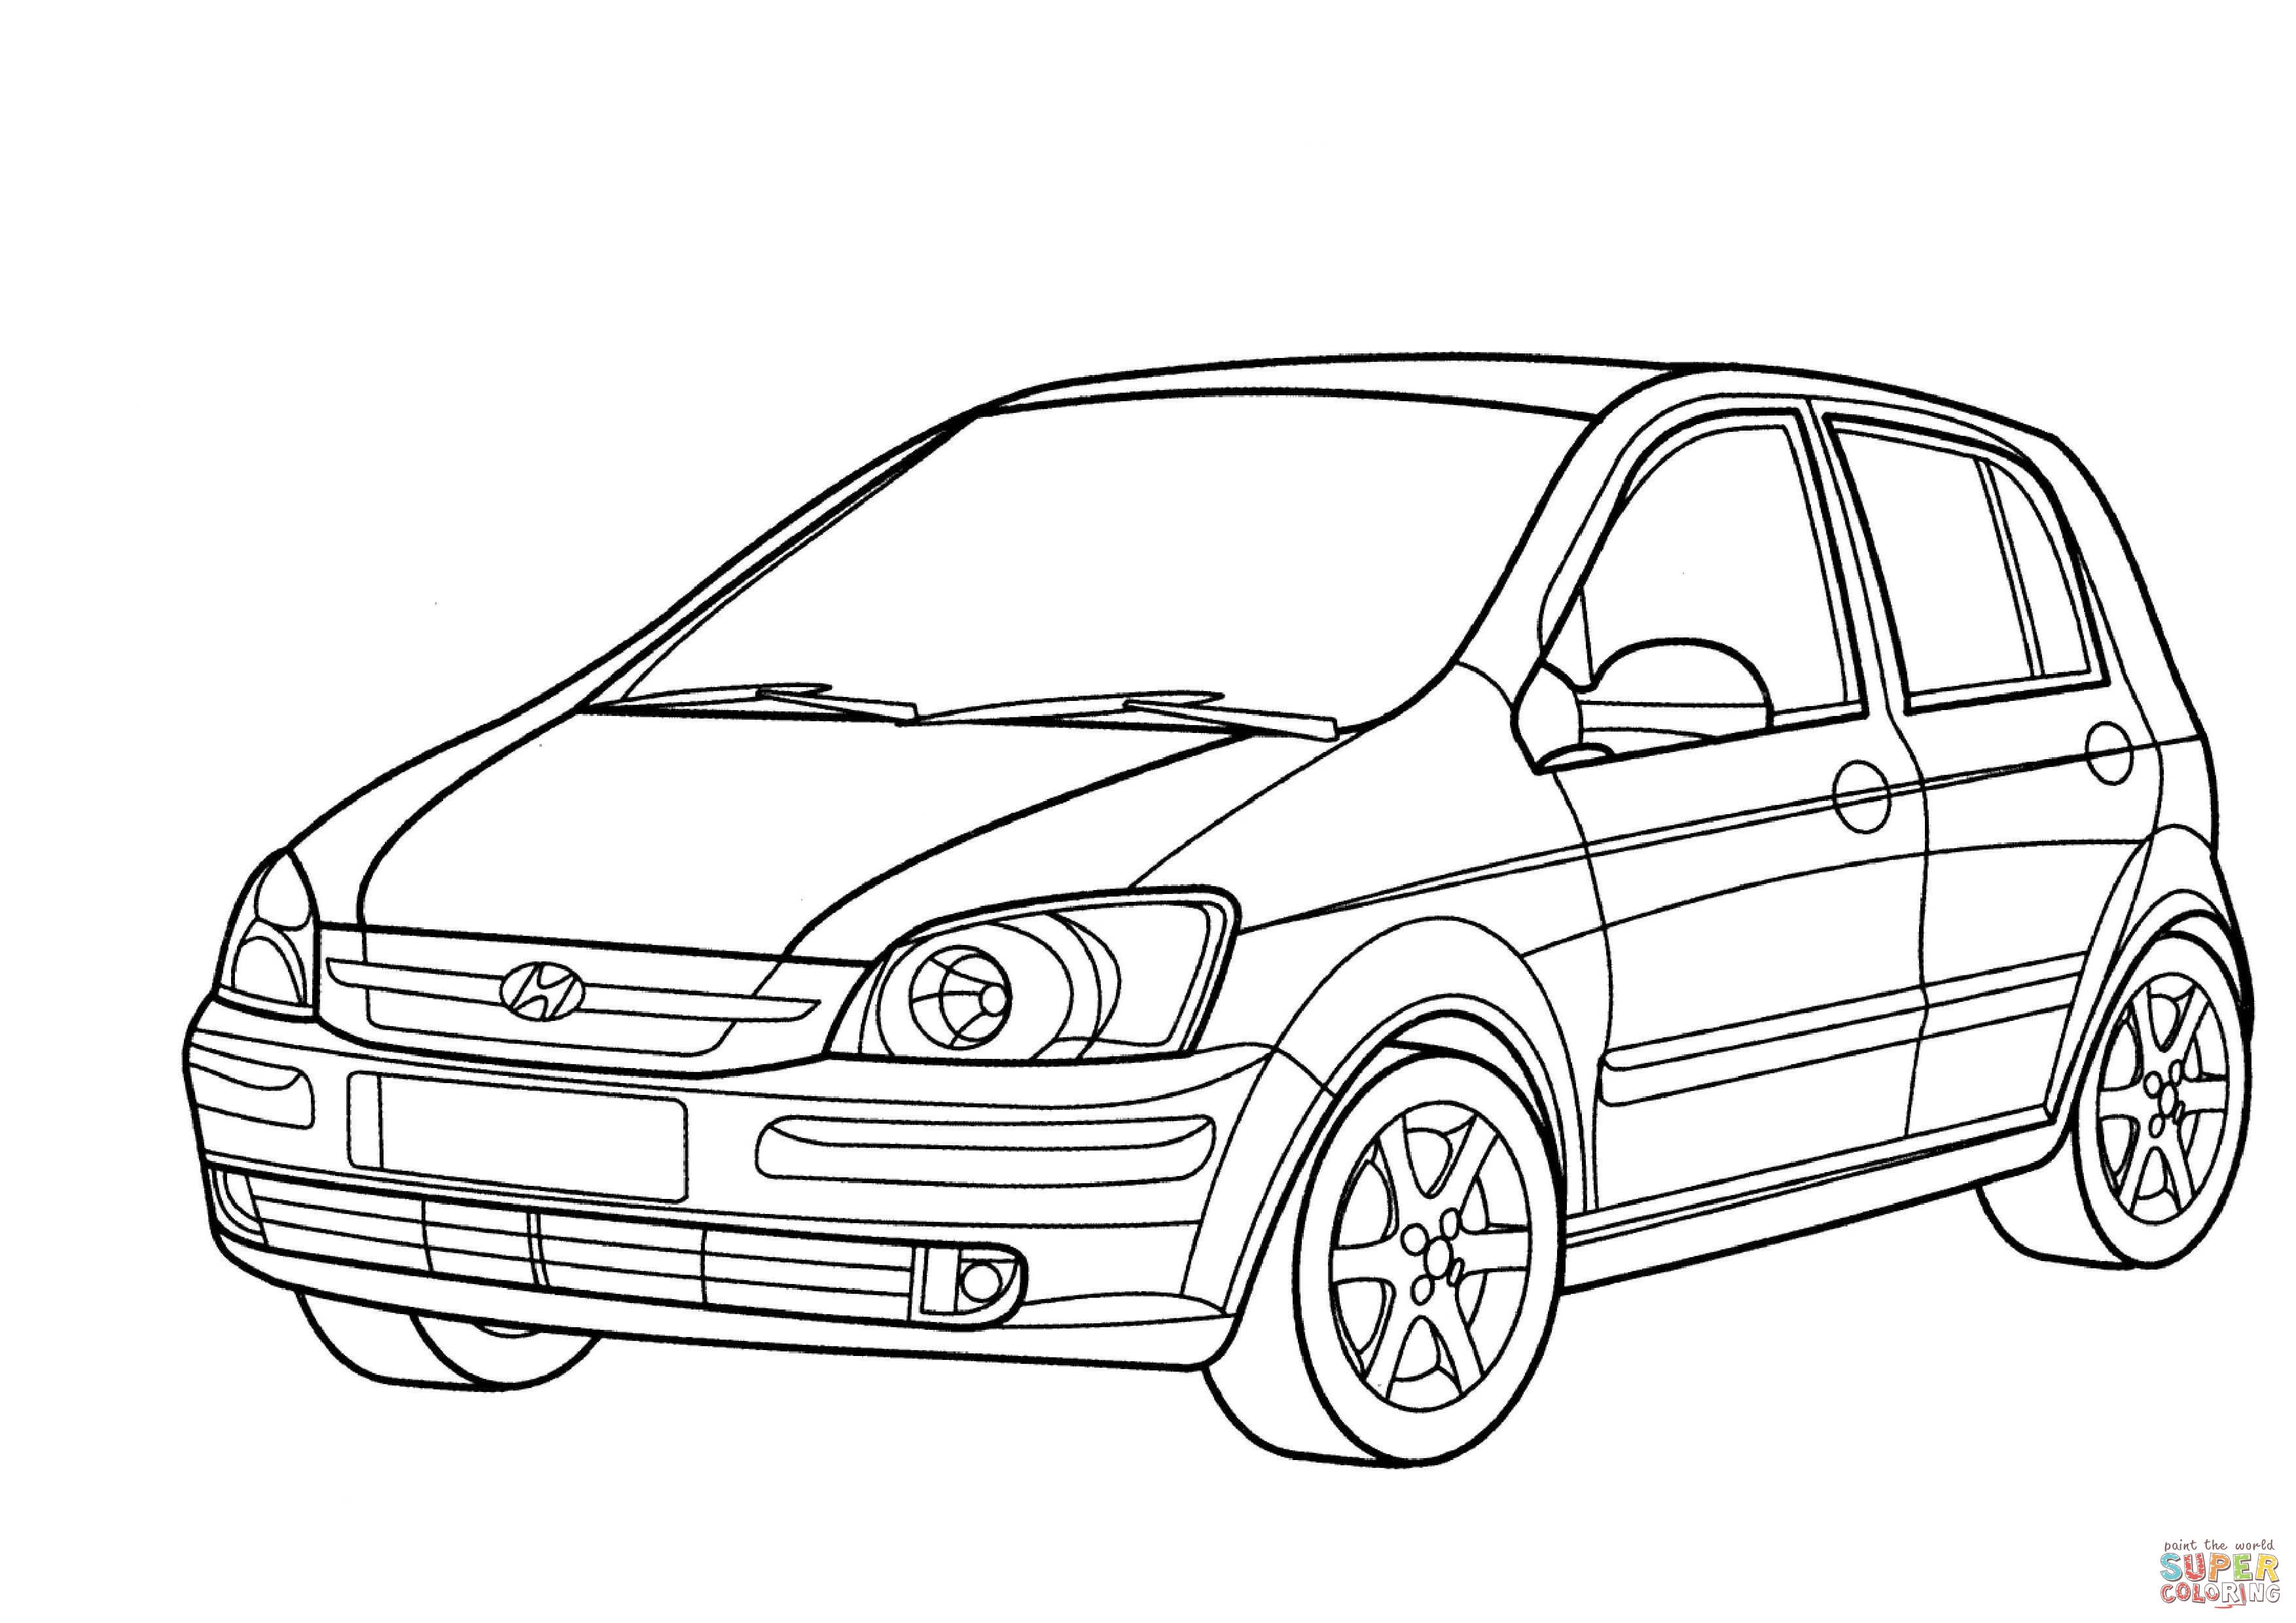 Santa Fe Coloring Pages With Hyundai Getz Page Free Printable